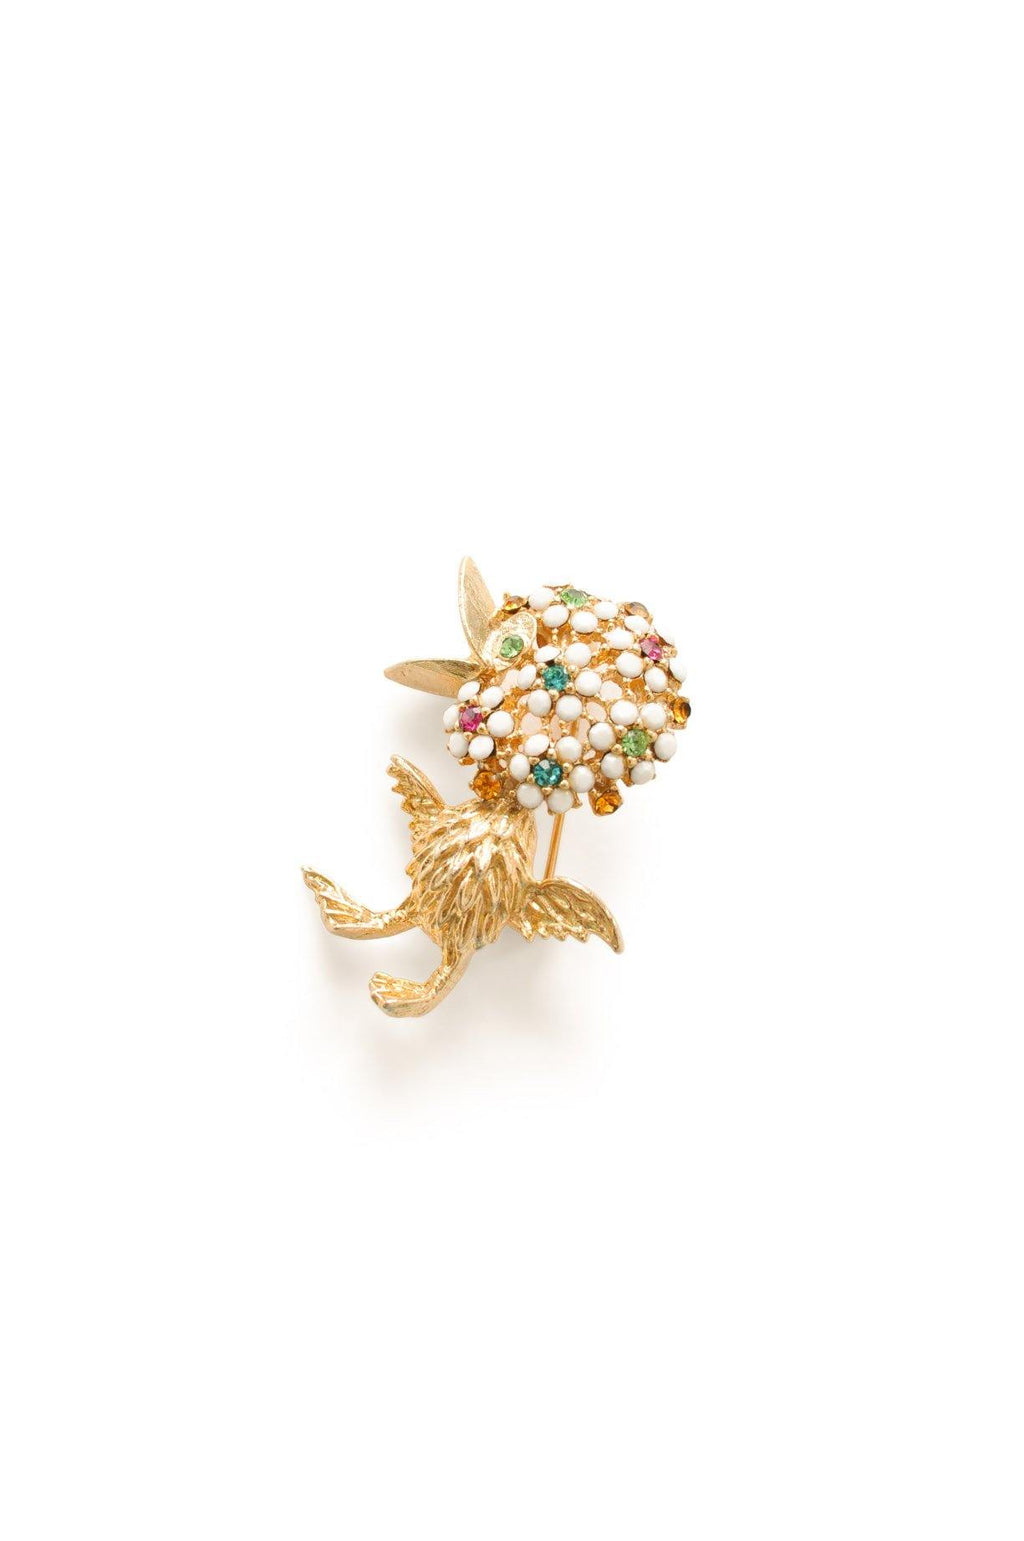 Gold and Rhinestone Bird Brooch